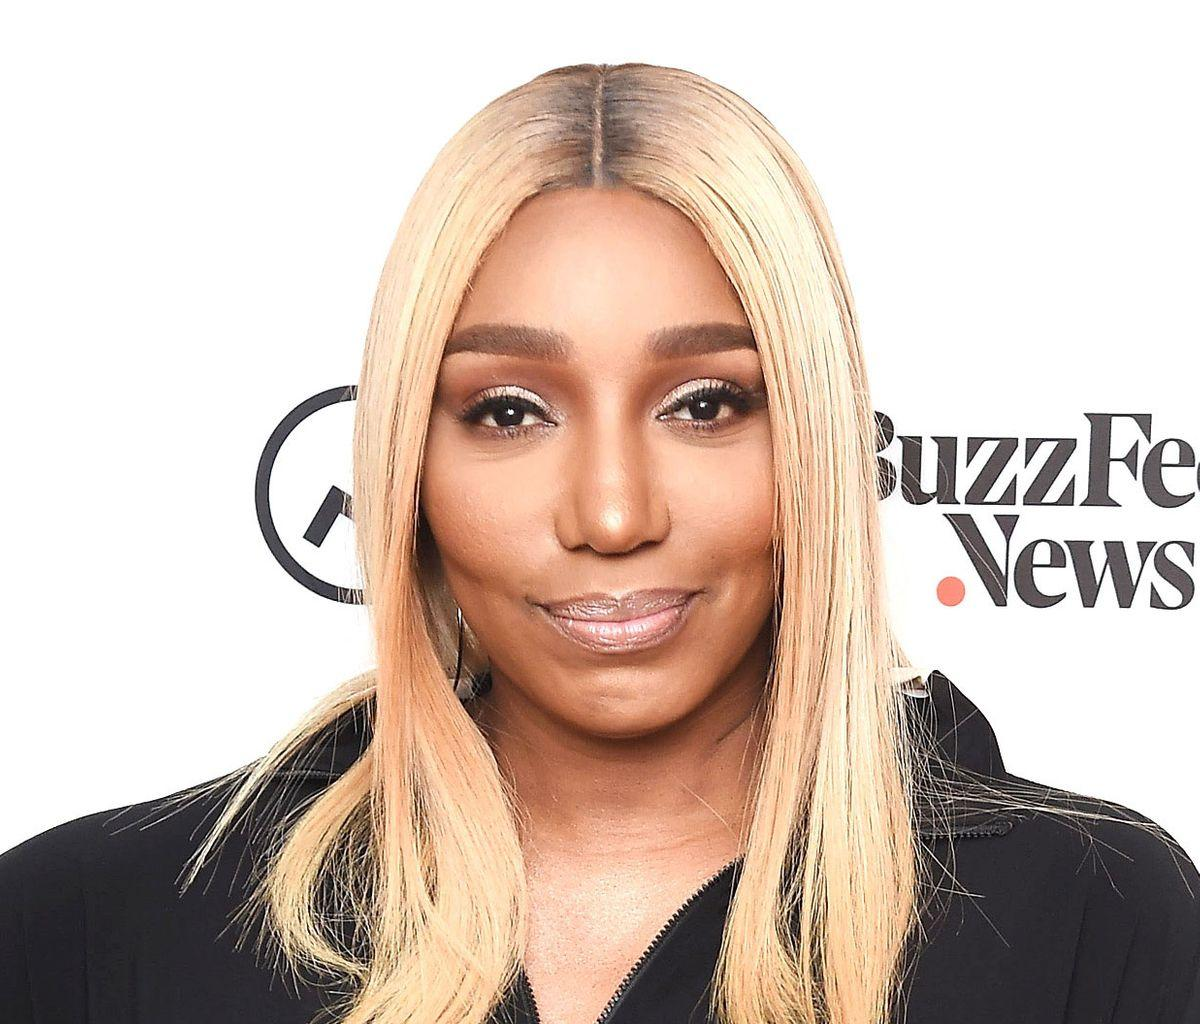 NeNe Leakes Tells Haters That All She's Focused On These Days Is Her Bag